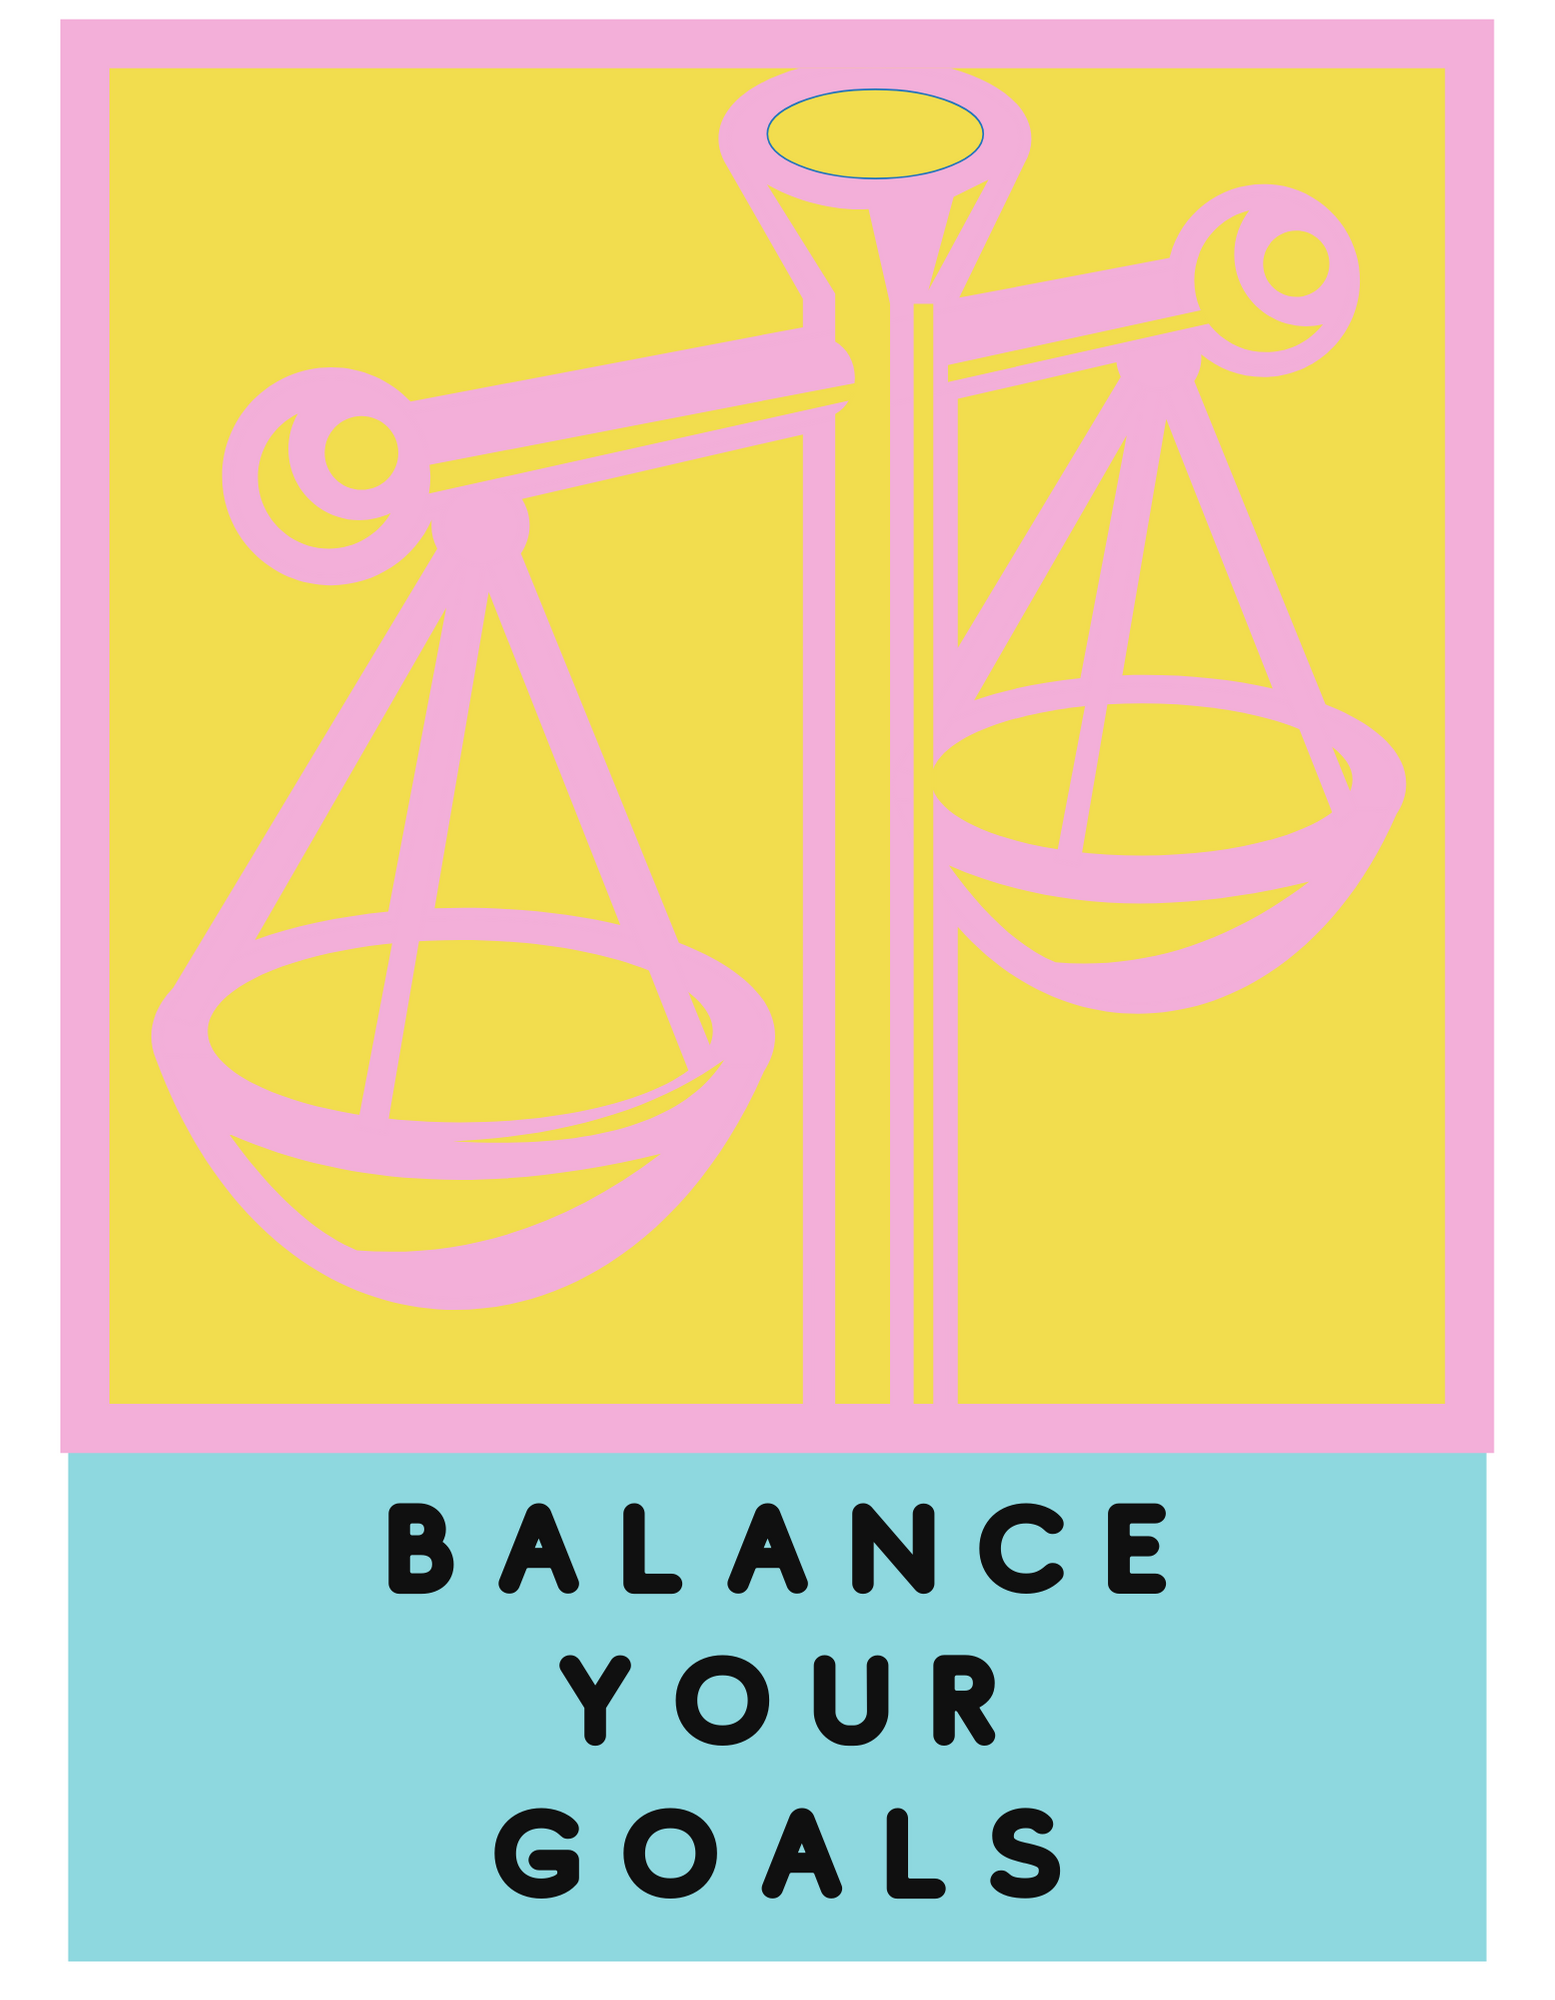 How to balance your goals